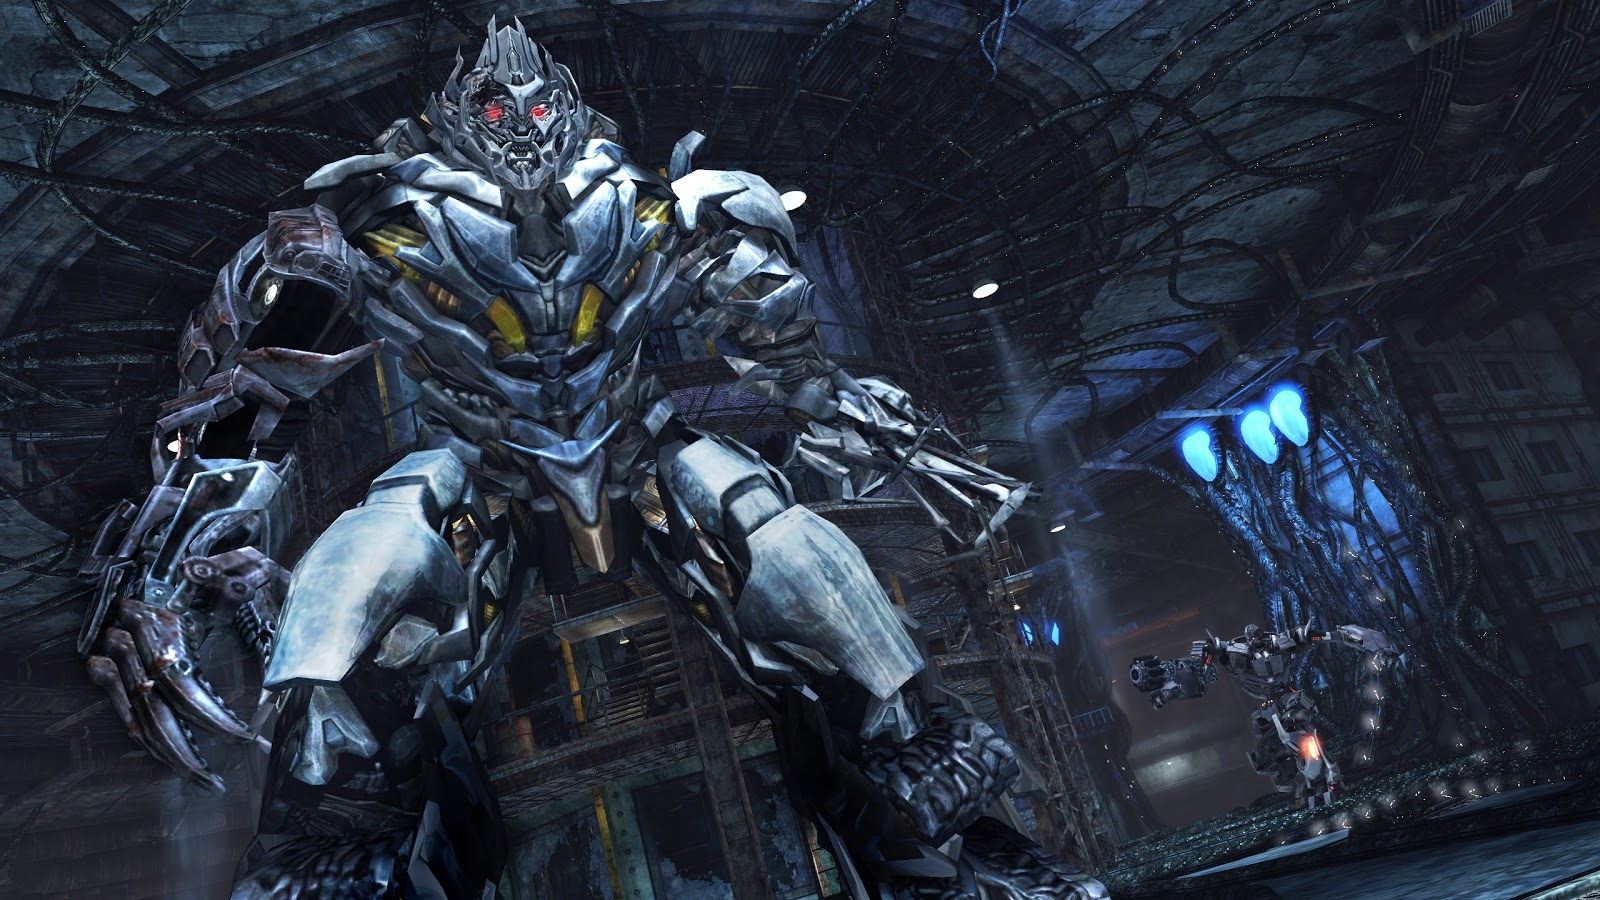 New Transformers: Dark Of The Moon Video Game Teaser and Screens